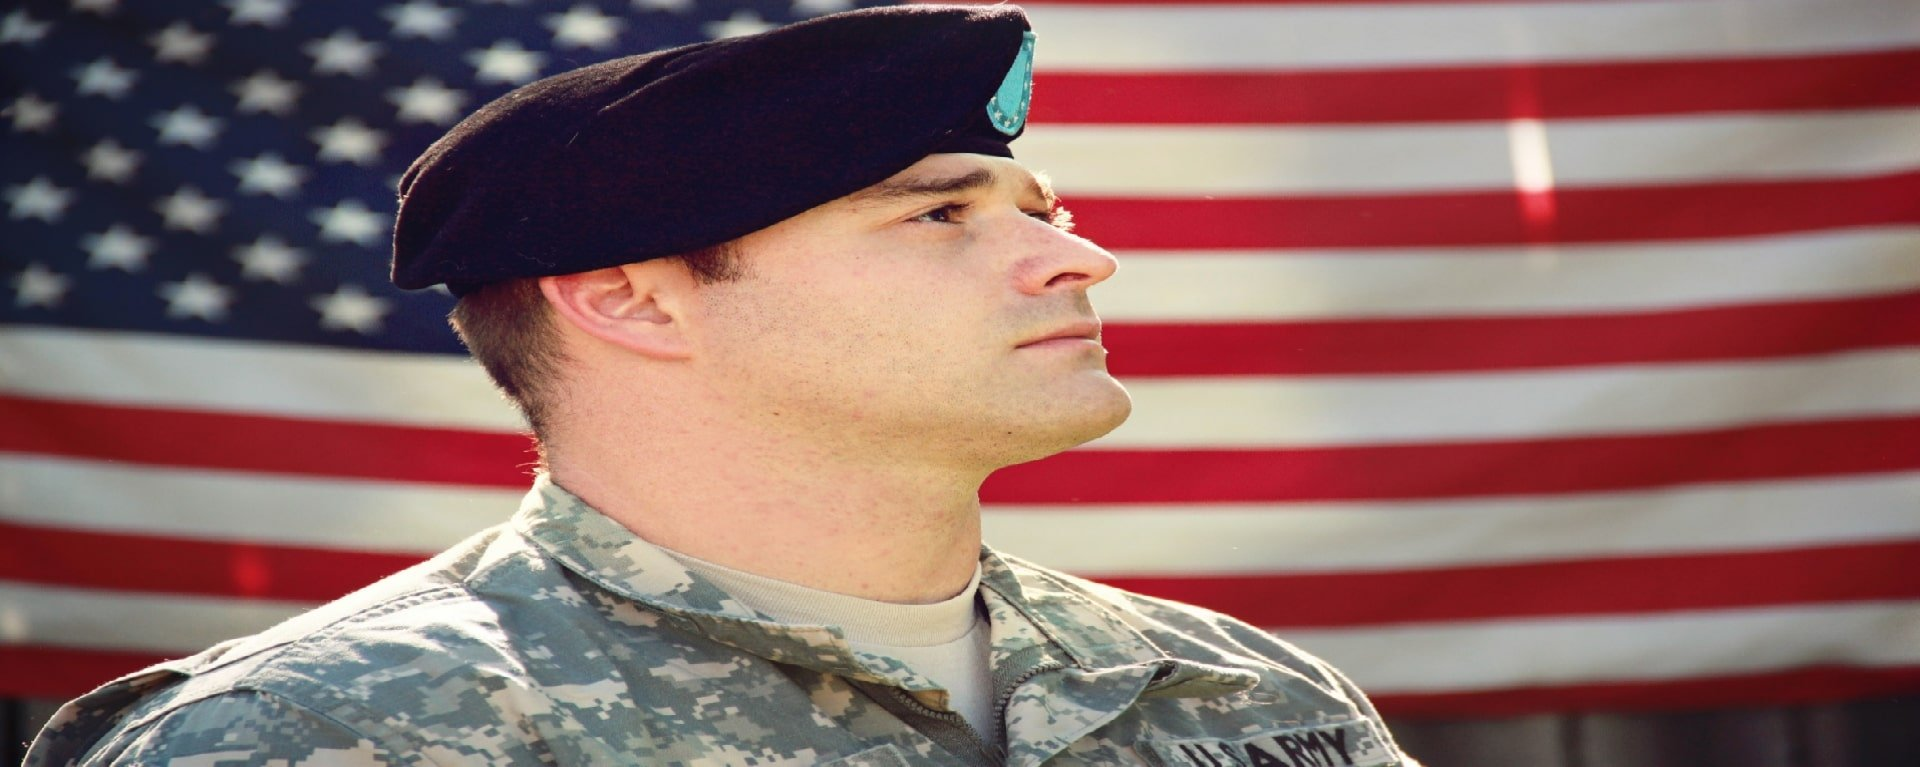 Veterans Home Loan